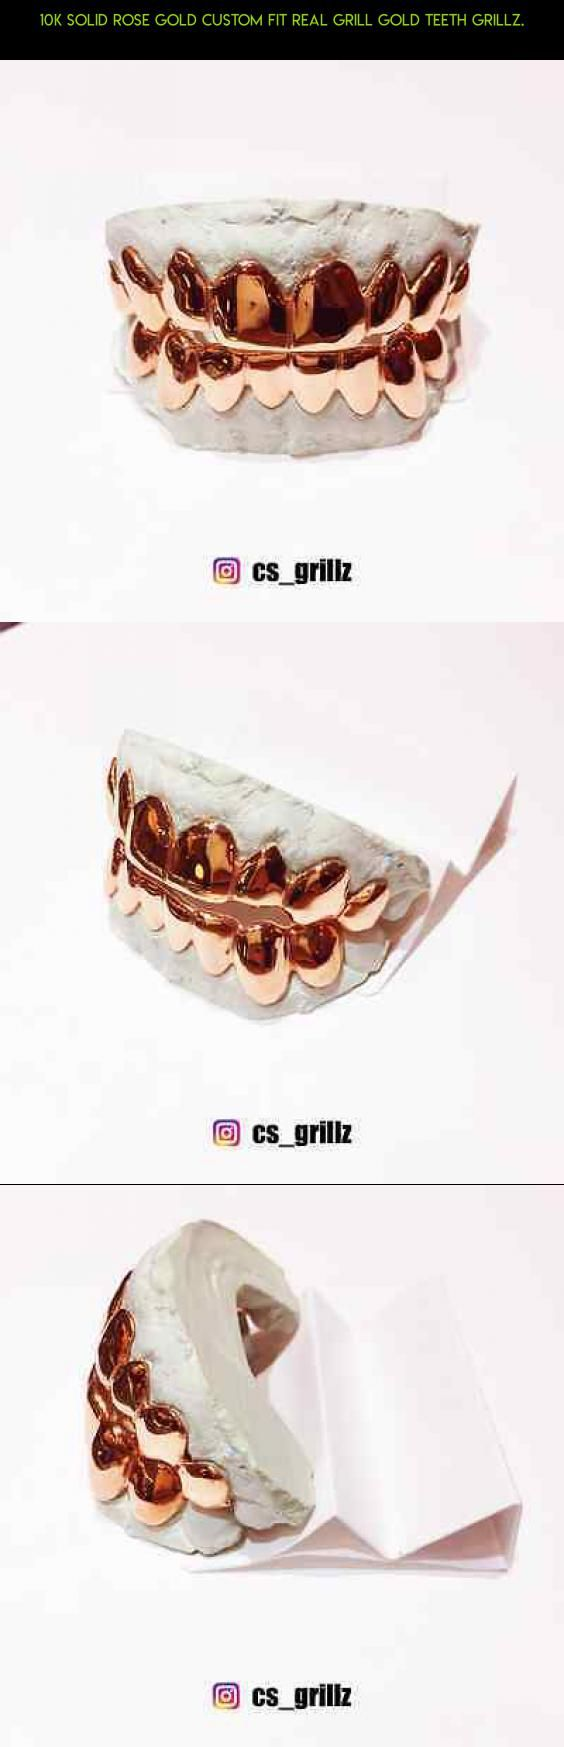 10K Solid Rose Gold Custom Fit REAL Grill Gold Teeth GRILLZ. #rose #fpv #shopping #tech #gadgets #grills #racing #technology #products #drone #kit #camera #plans #gold #parts